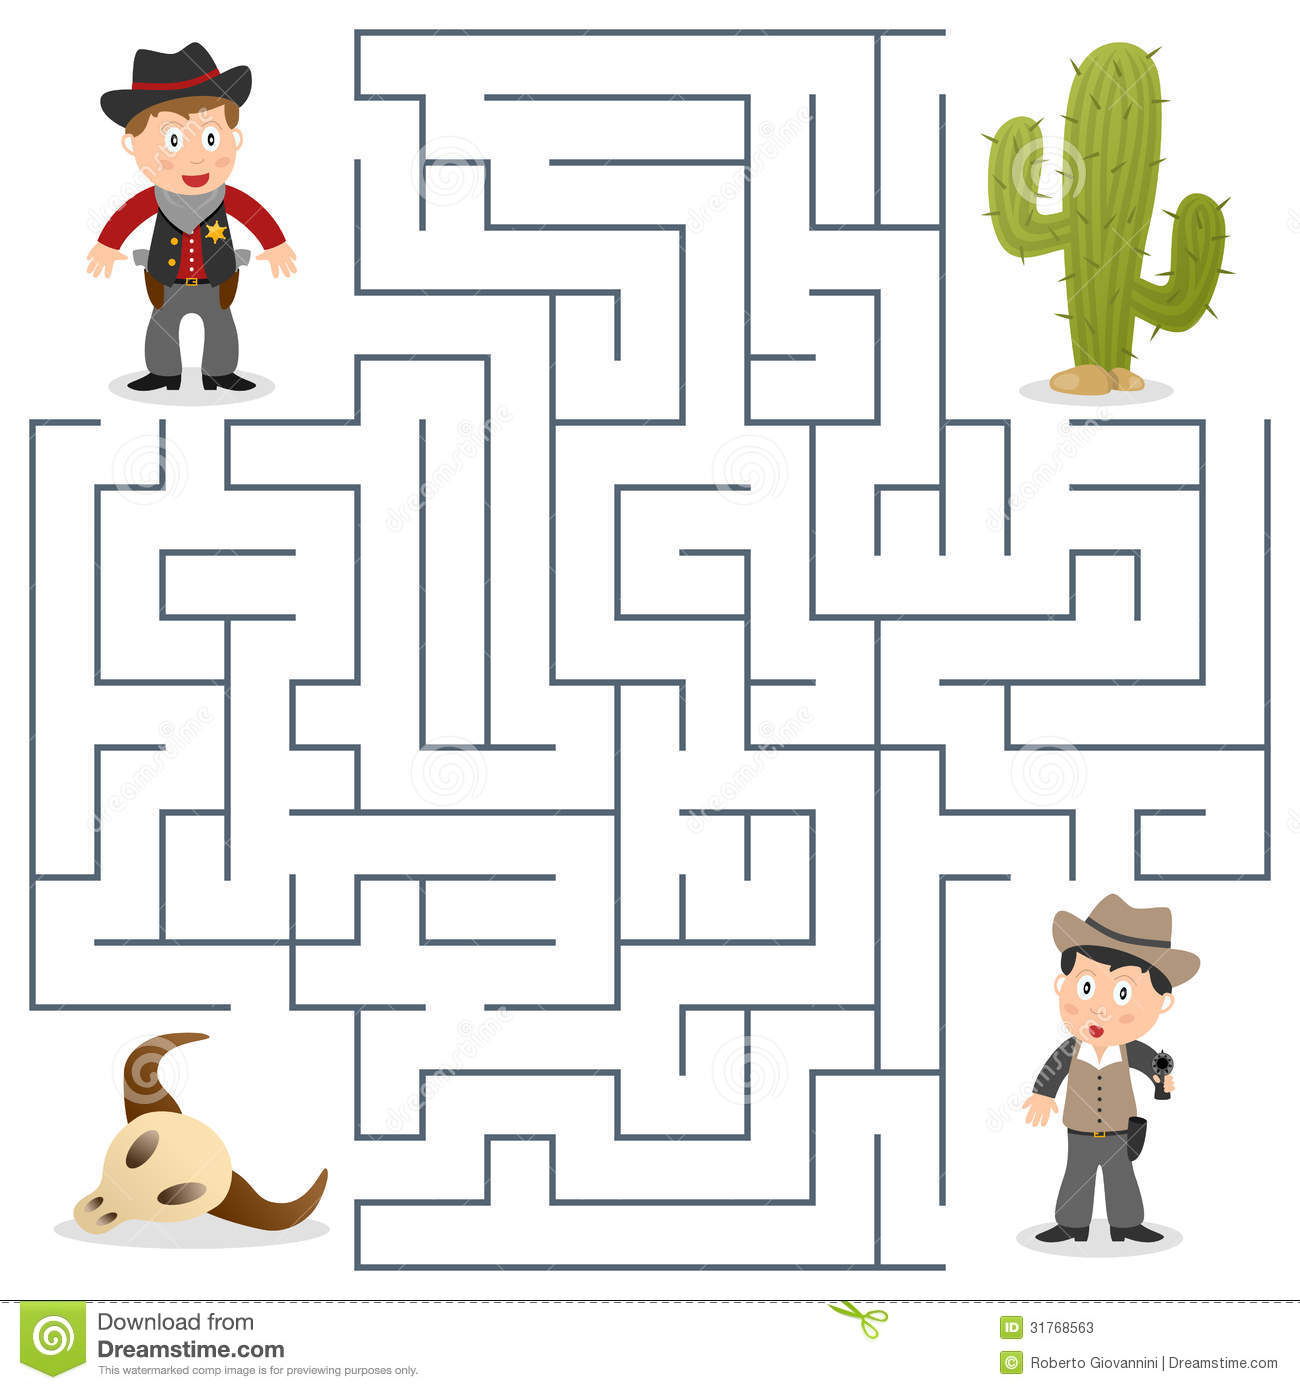 sheriff wanted maze for kids stock vector illustration of puzzle design 31768563. Black Bedroom Furniture Sets. Home Design Ideas